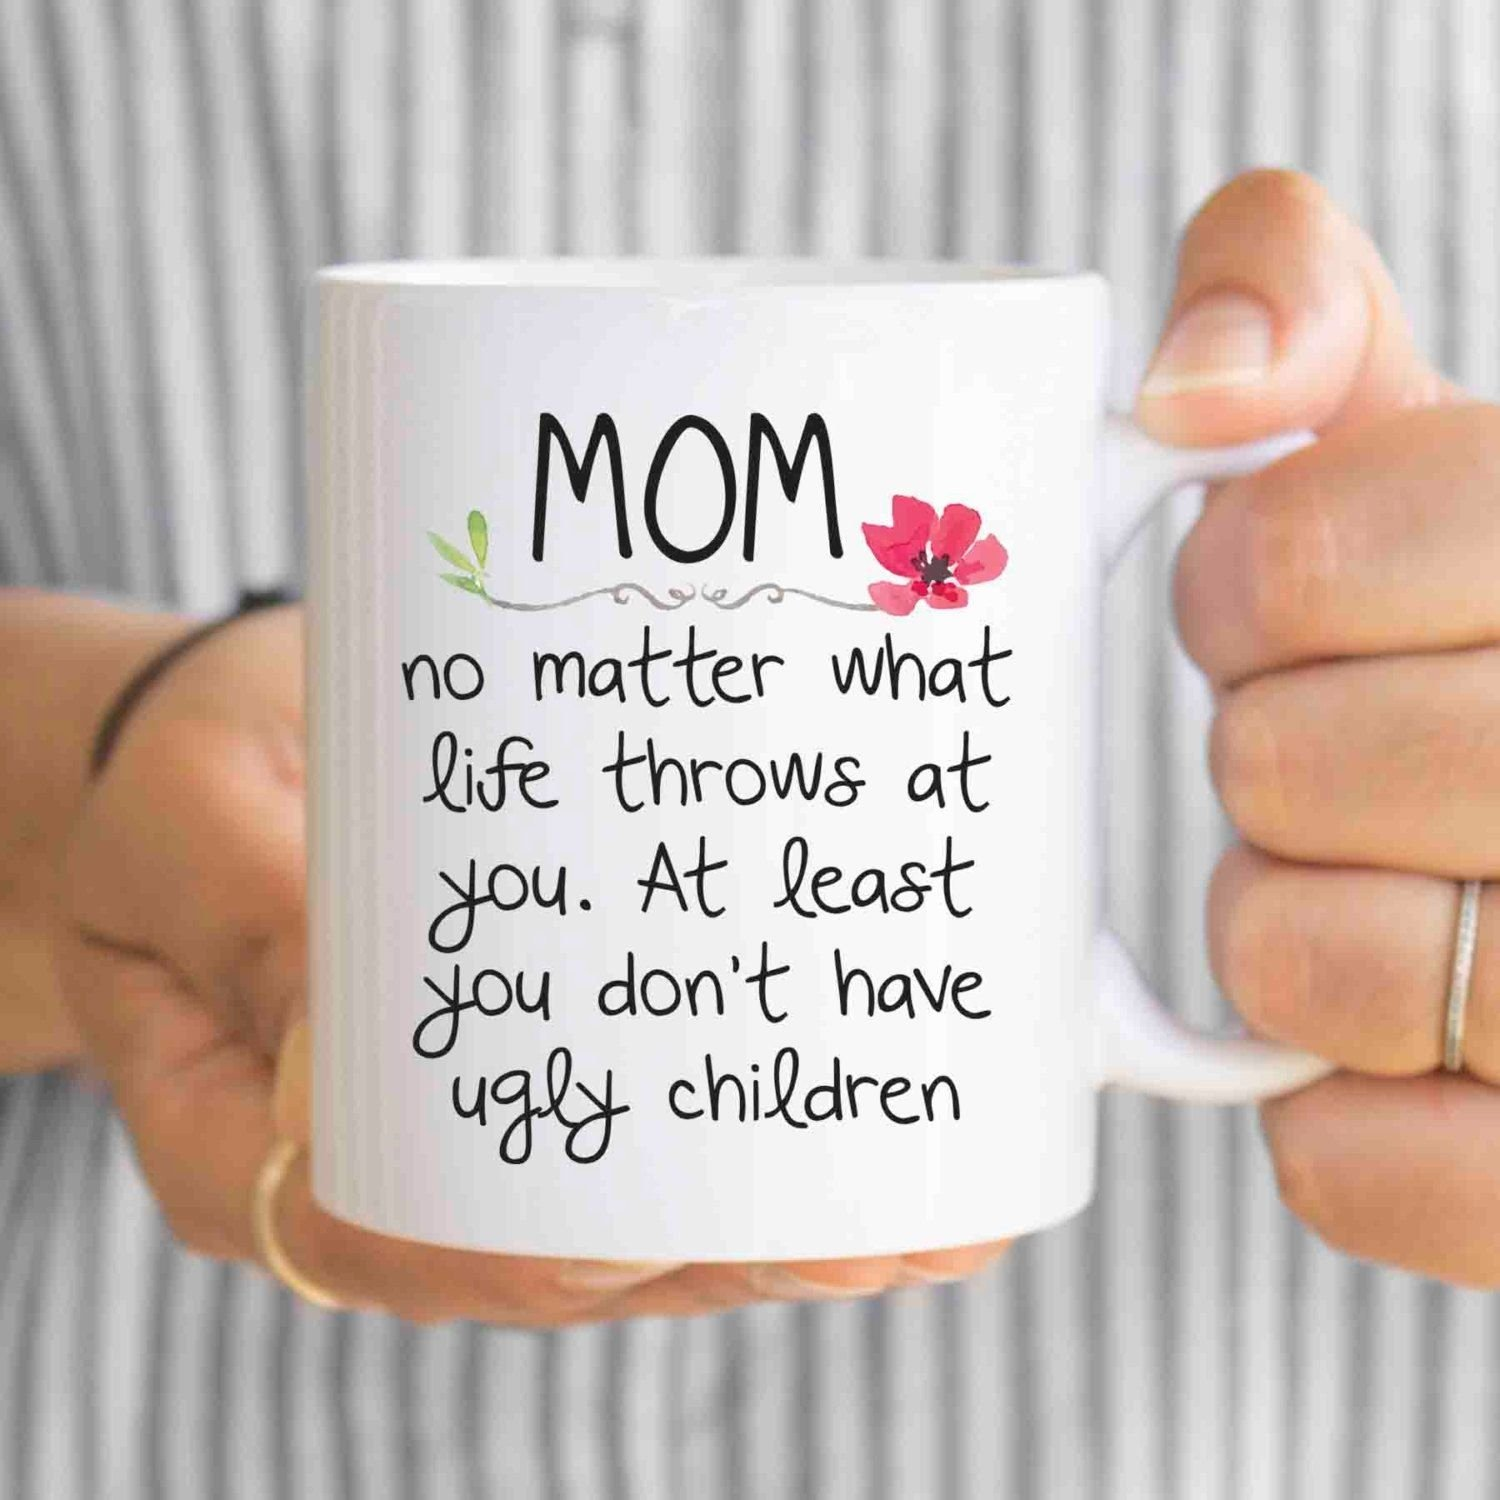 10 Famous Mom Birthday Gift Ideas From Daughter Mother Of The Bride Mothers Day